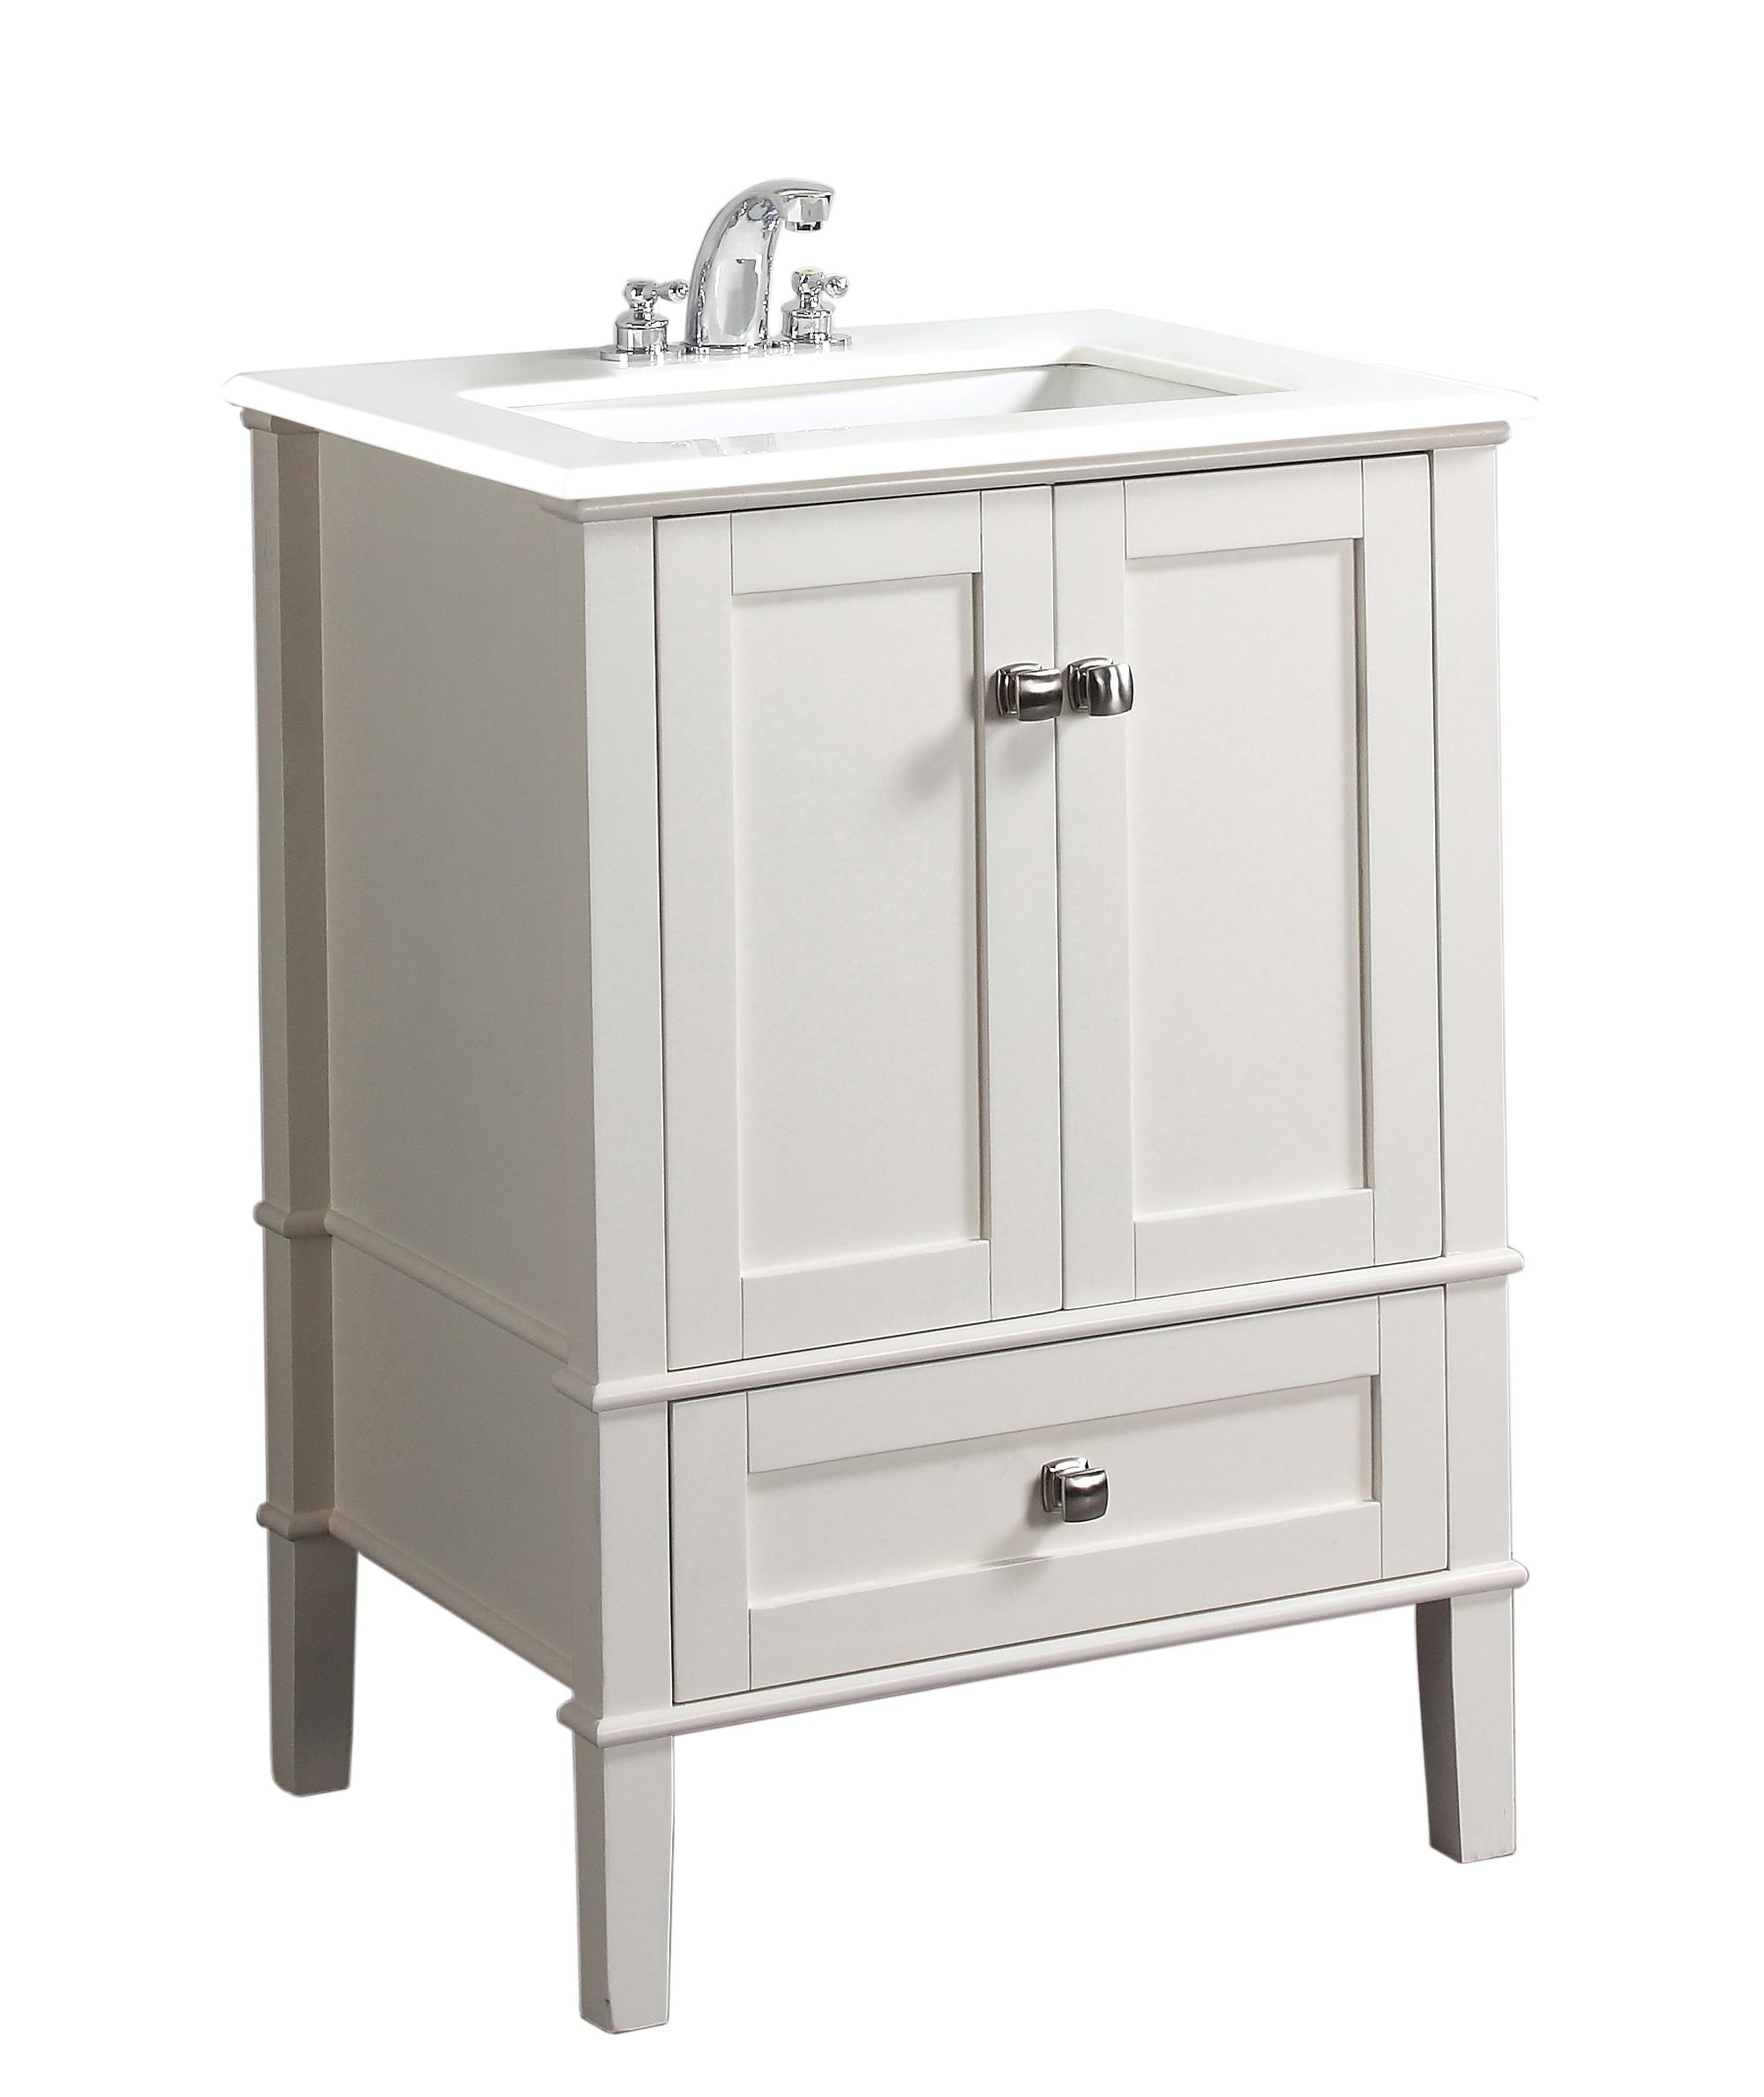 24 bath vanity with white quartz marble top bathroom vanities